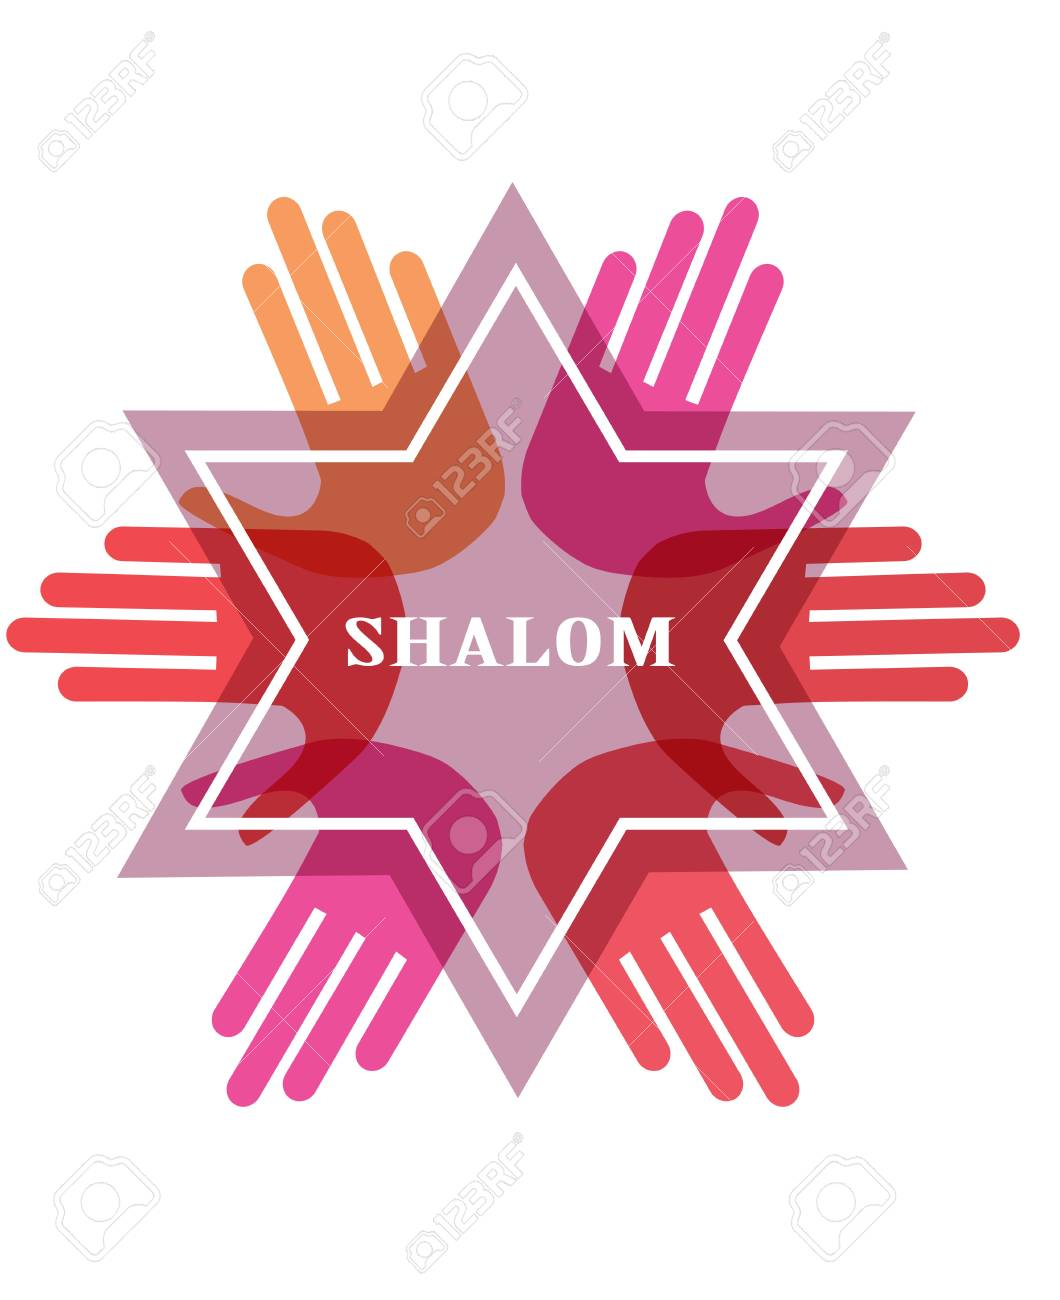 Shalom peace in hebrew jew star symbol of judaism religion shalom peace in hebrew jew star symbol of judaism religion israel vector biocorpaavc